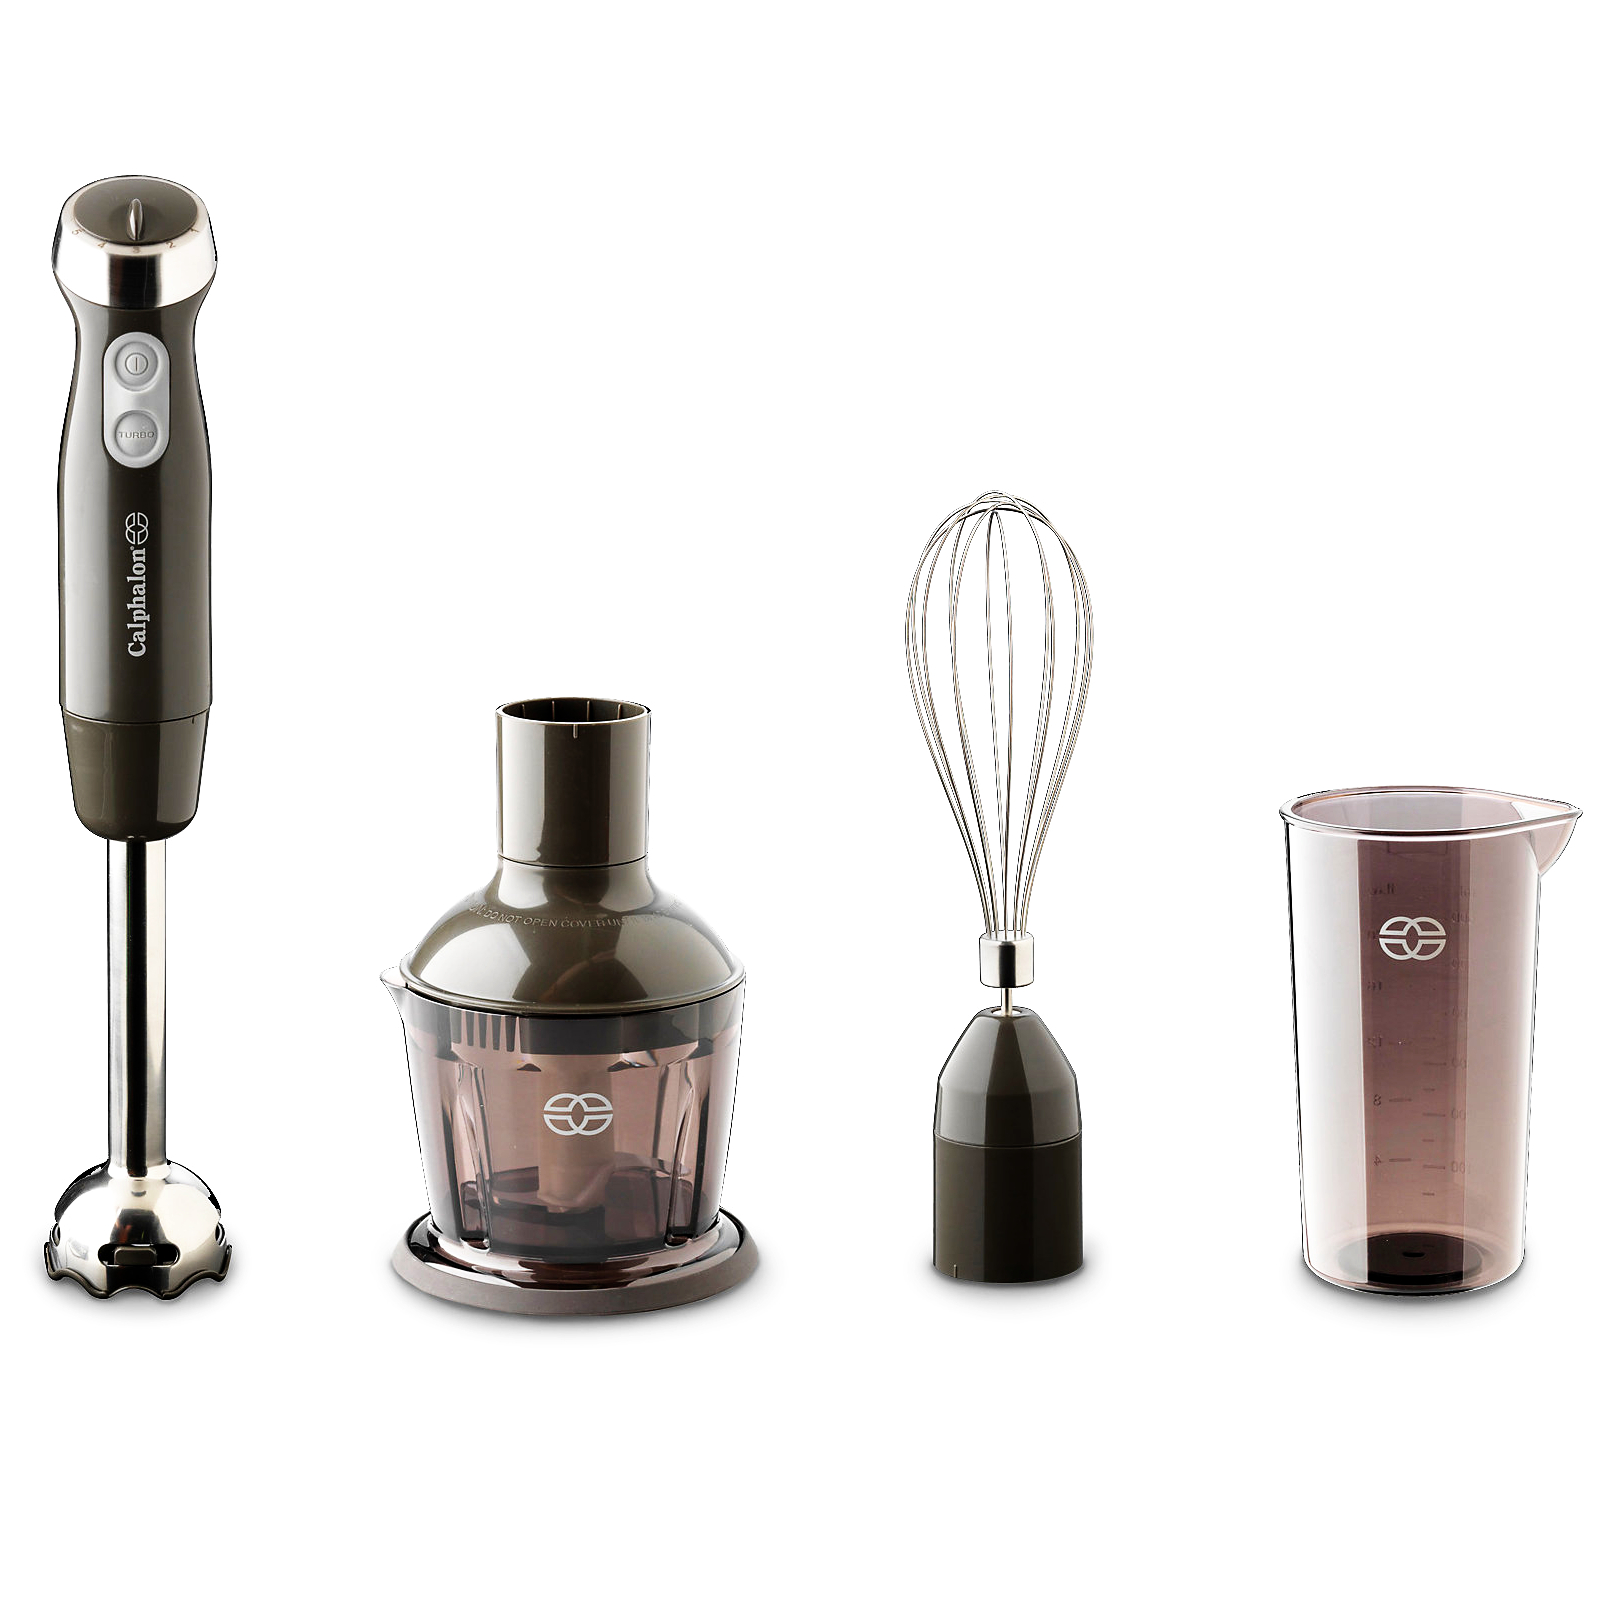 Calphalon Brushed Stainless Steel 3 in 1 Immersion Blender